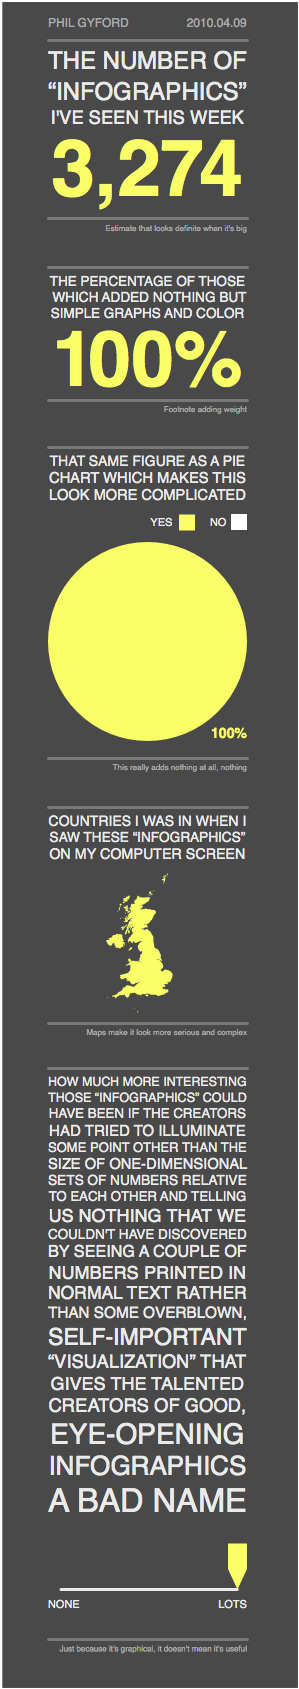 When infographics go bad